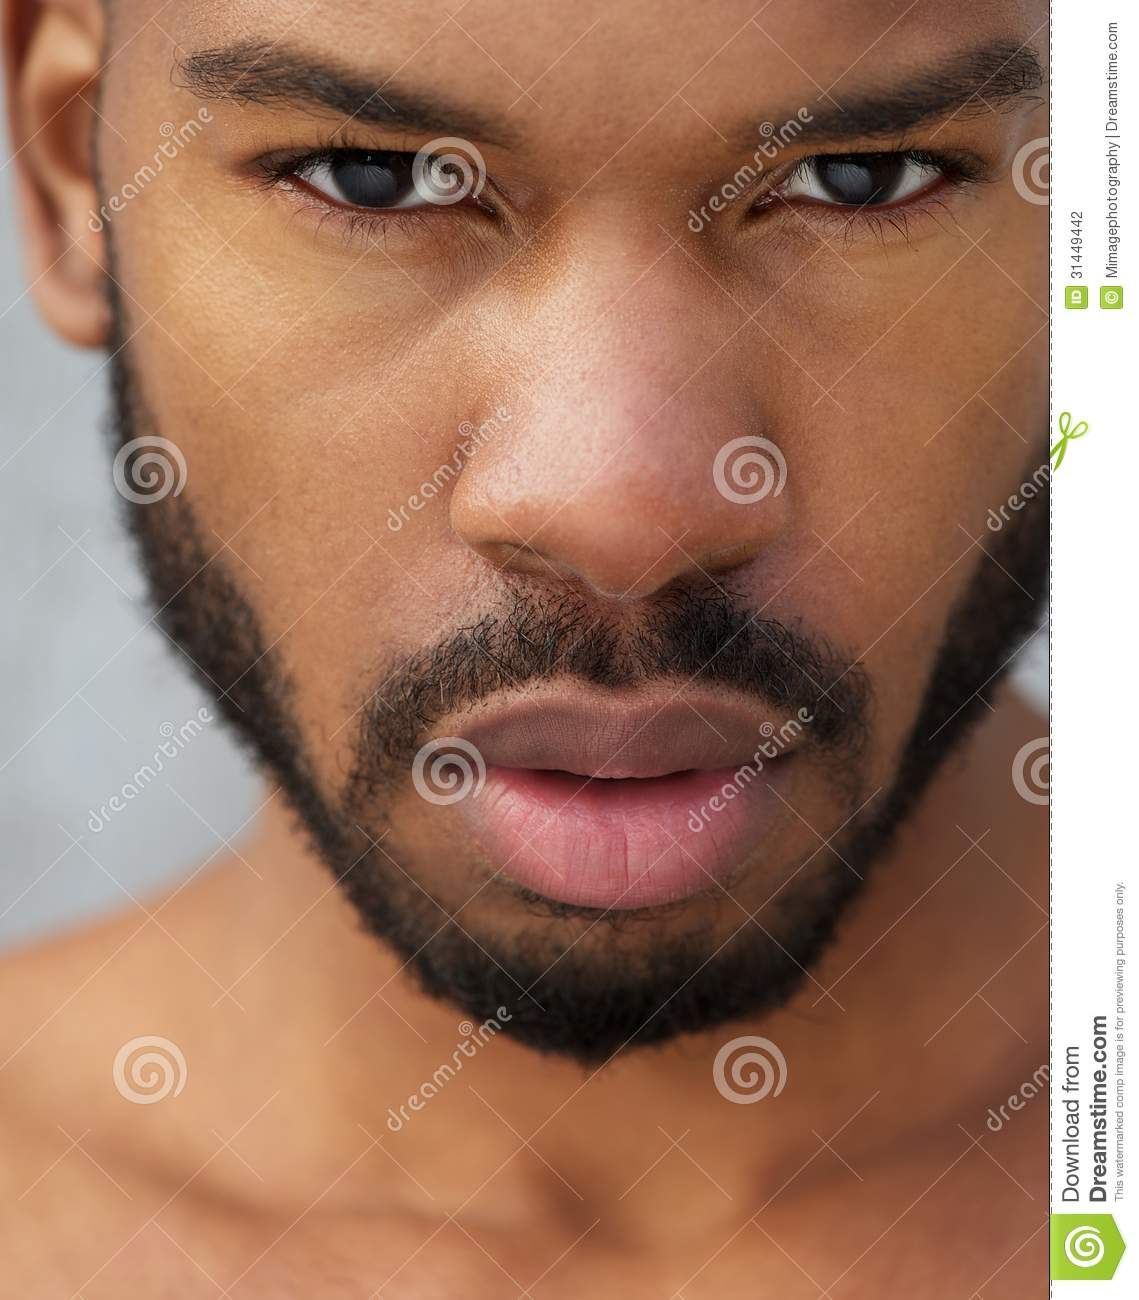 Close up portrait of a african american male model